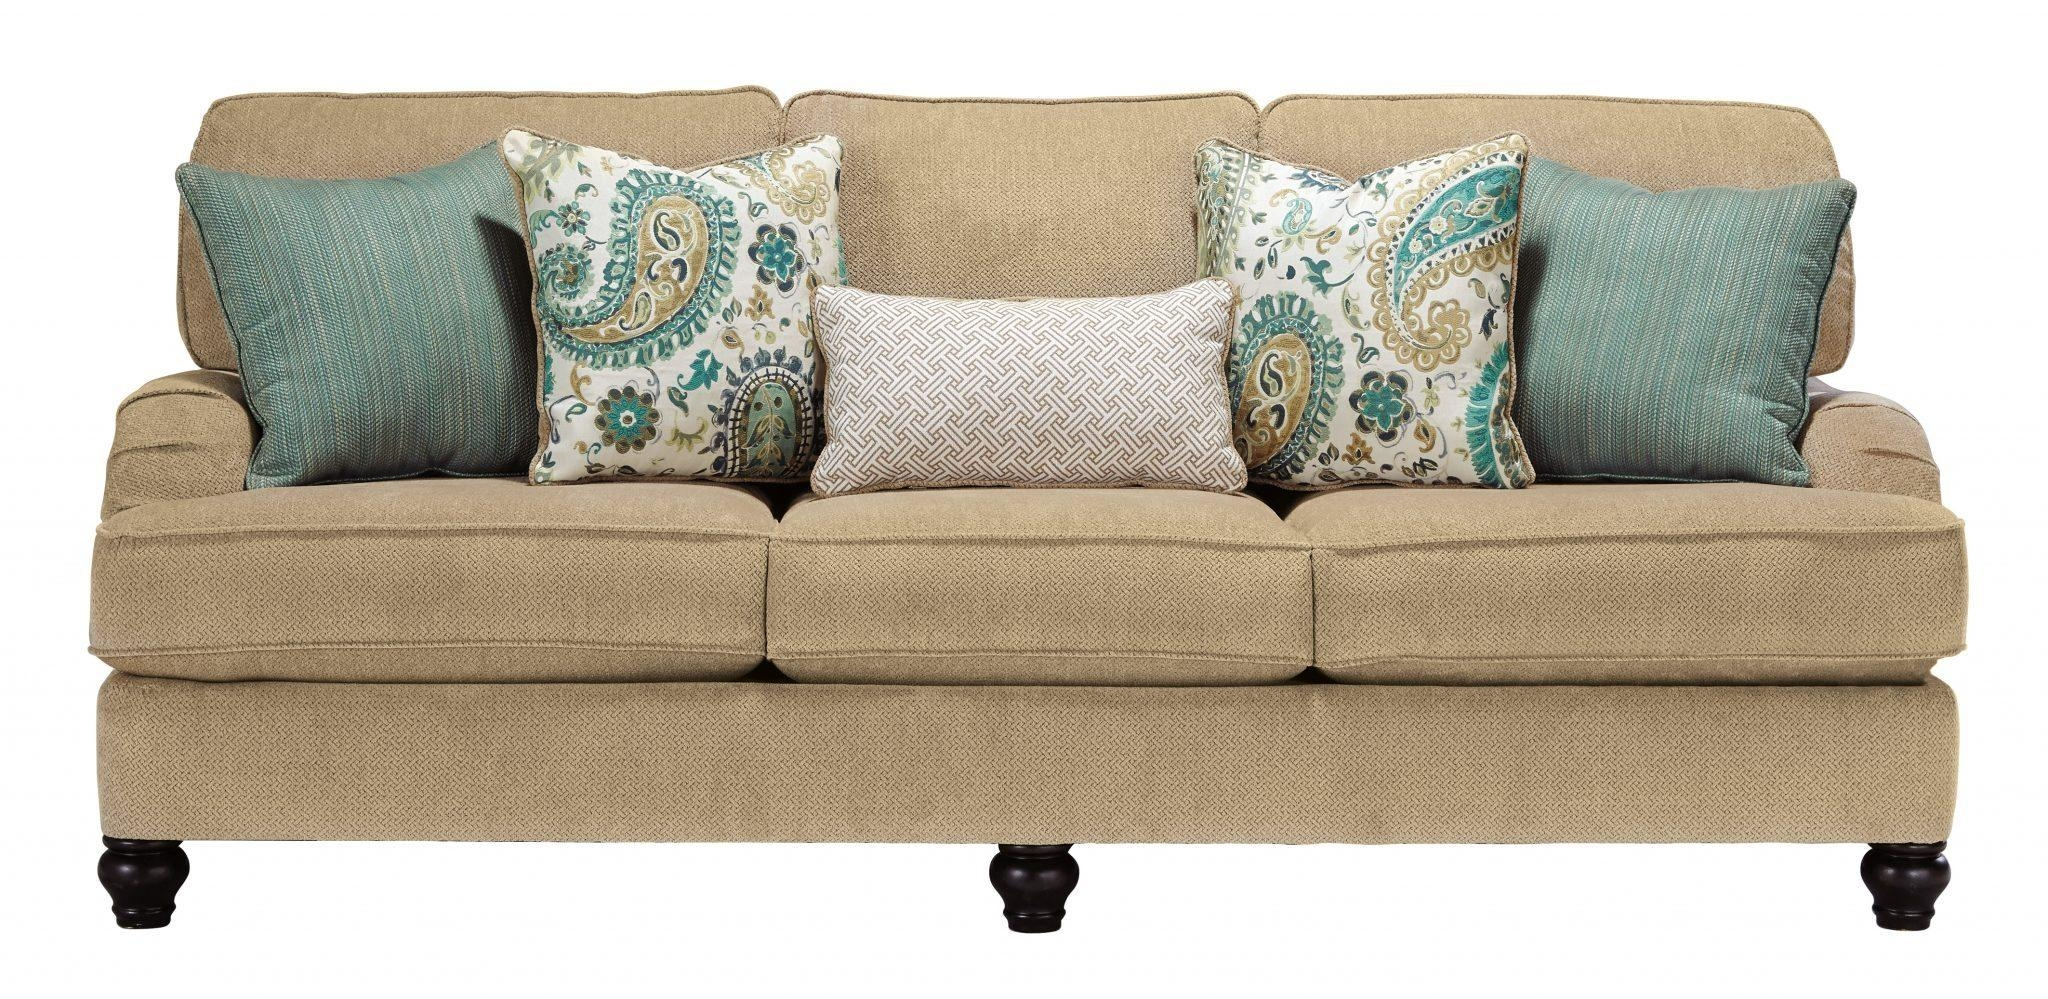 Best Furniture Mentor Oh: Furniture Store – Ashley Furniture Inside Ashley Tufted Sofa (View 11 of 20)